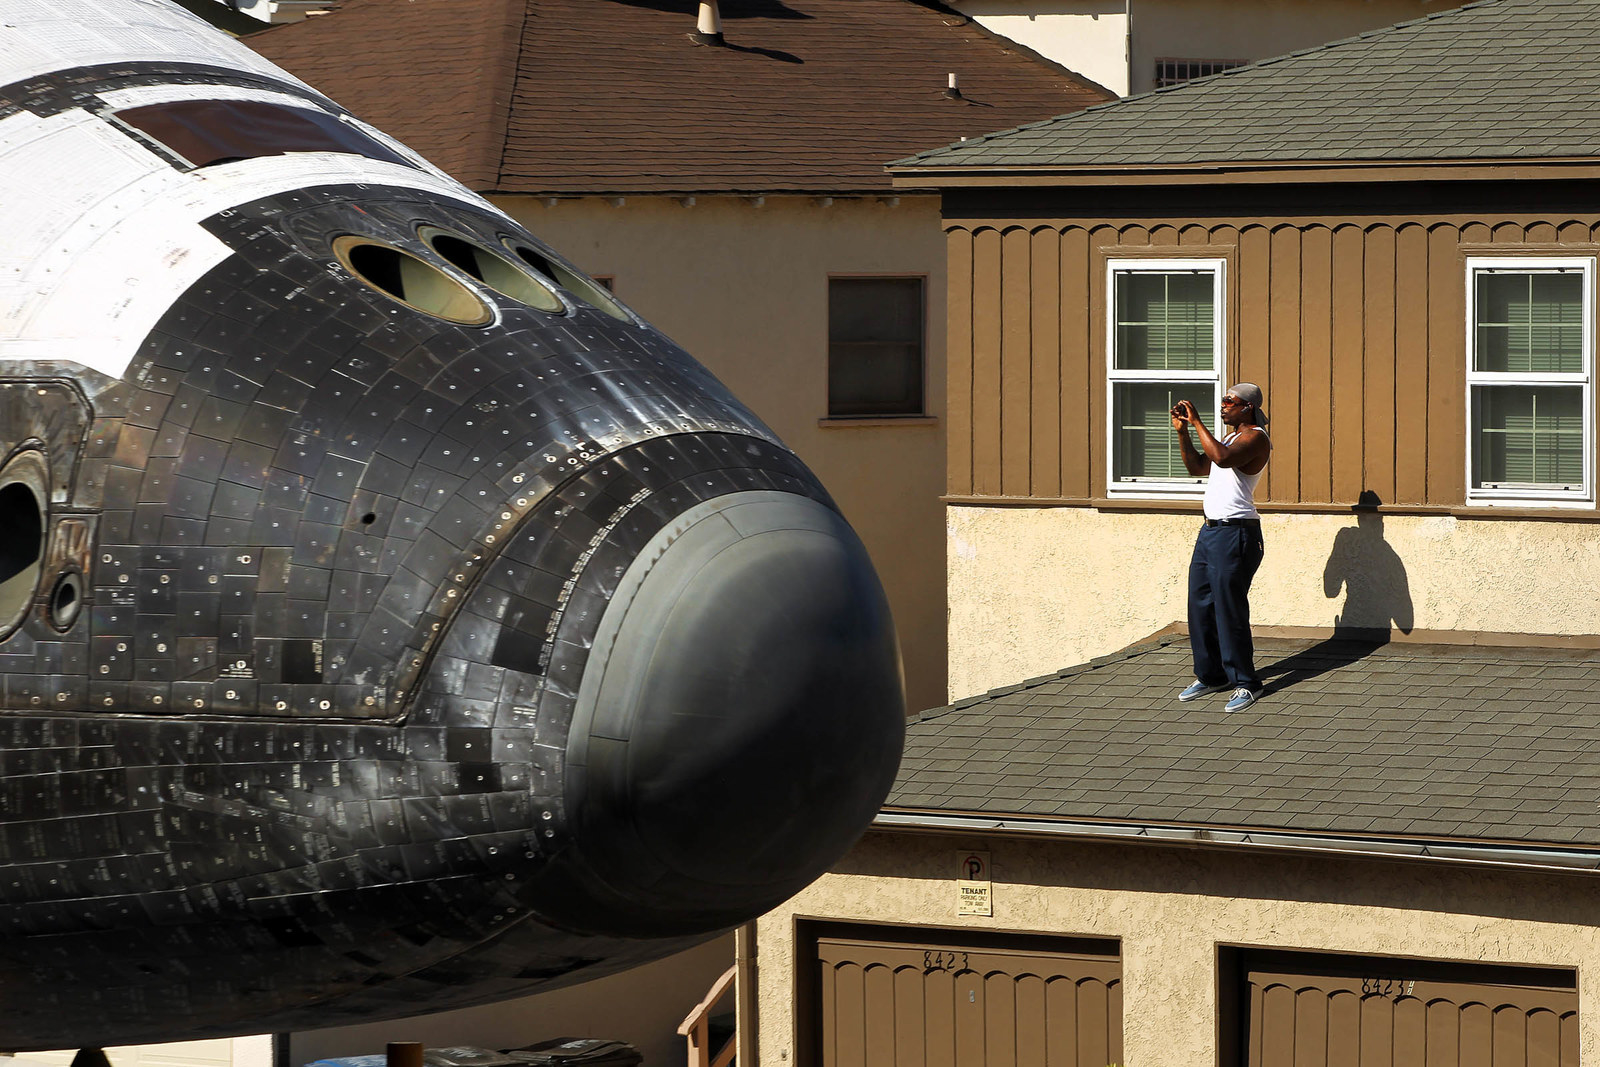 2012 A man takes a picture from a rooftop as the Endeavour Space Shuttle makes its way toward the California Science Center on Oct. 13, 2012, in Inglewood, California. Endeavour is on its last mission — a 12-mile creep through city streets, past an eclectic mix of strip malls, mom-and-pop shops, tidy lawns, and faded apartment buildings. Its final destination is the California Science Center in South Los Angeles where it will be put on display. NASA's Space Shuttle Program ended in 2011 after 30 years and 135 missions.